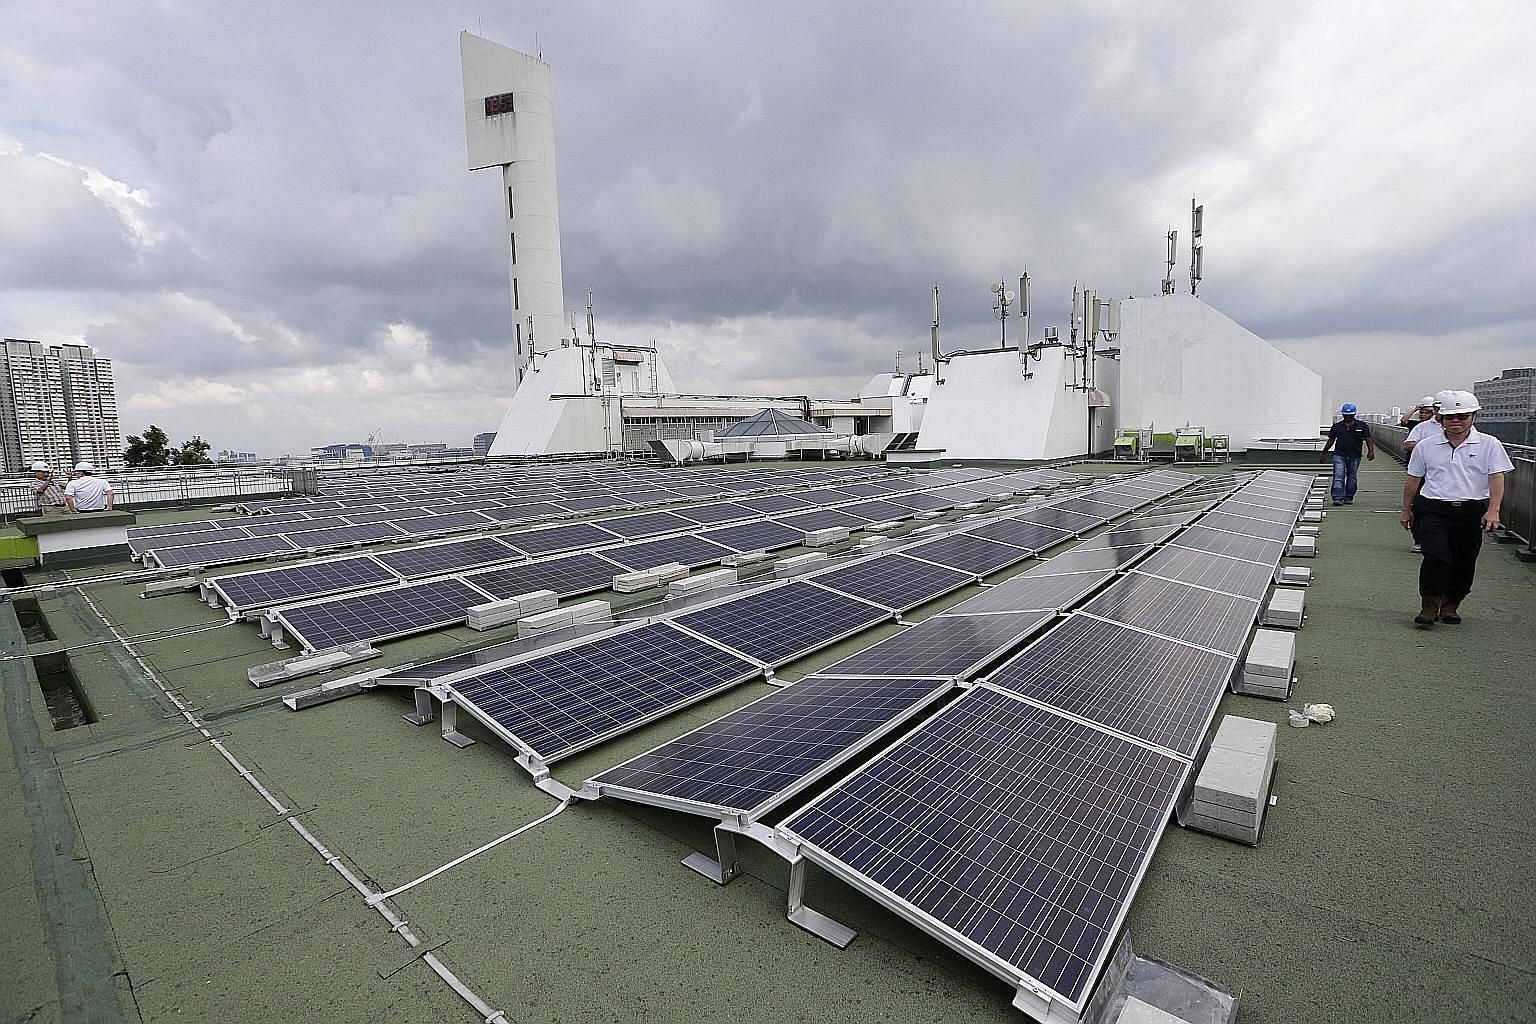 Solar panels on the rooftop of Jurong Town Hall. Under the memorandum of understanding, the Energy Market Authority and the United States' Federal Energy Regulatory Commission will share regulatory practices and explore how best to keep energy system